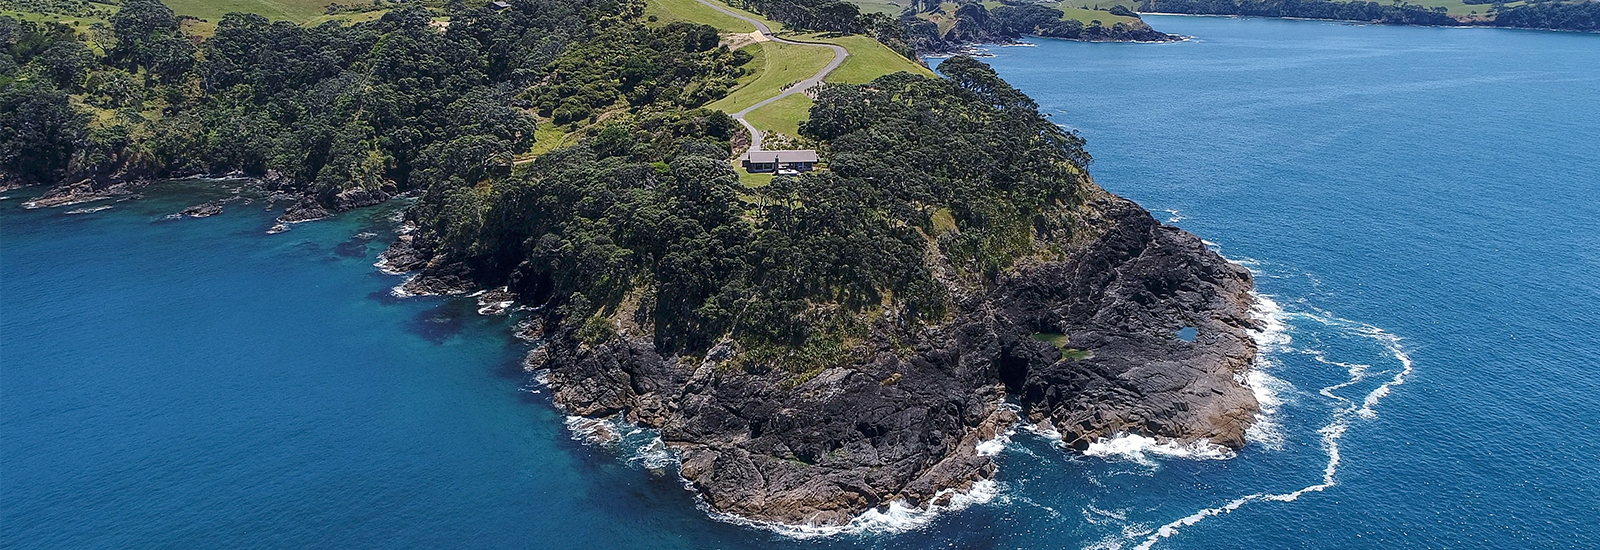 Whangarei luxury accommodation